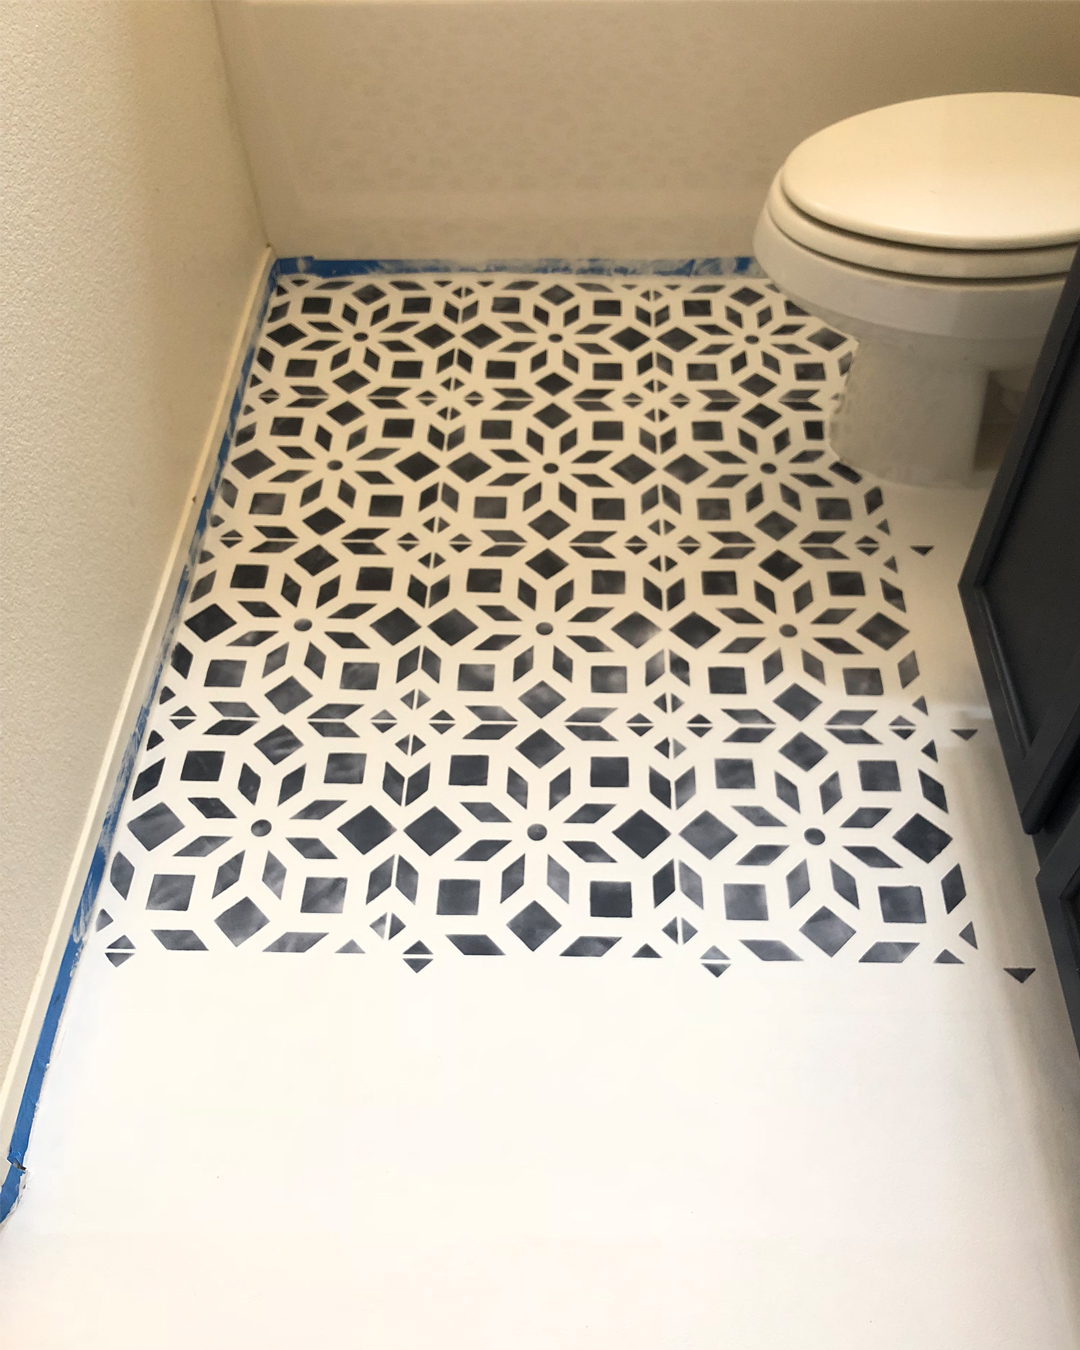 bathroom makeover on a budget, do it yourself home projects, bathroom makeover, BB Frosch, bathroom before and after, do it yourself bathroom makeover, DIY bathroom makeover, do it yourself bathroom makeover inspiration, painting linoleum floors with chalk paint, chalk paint project ideas, painting with behr paint, stencil projects, chalk painting with stencils, do it yourself stencil projects for the home, cutting edge stencils